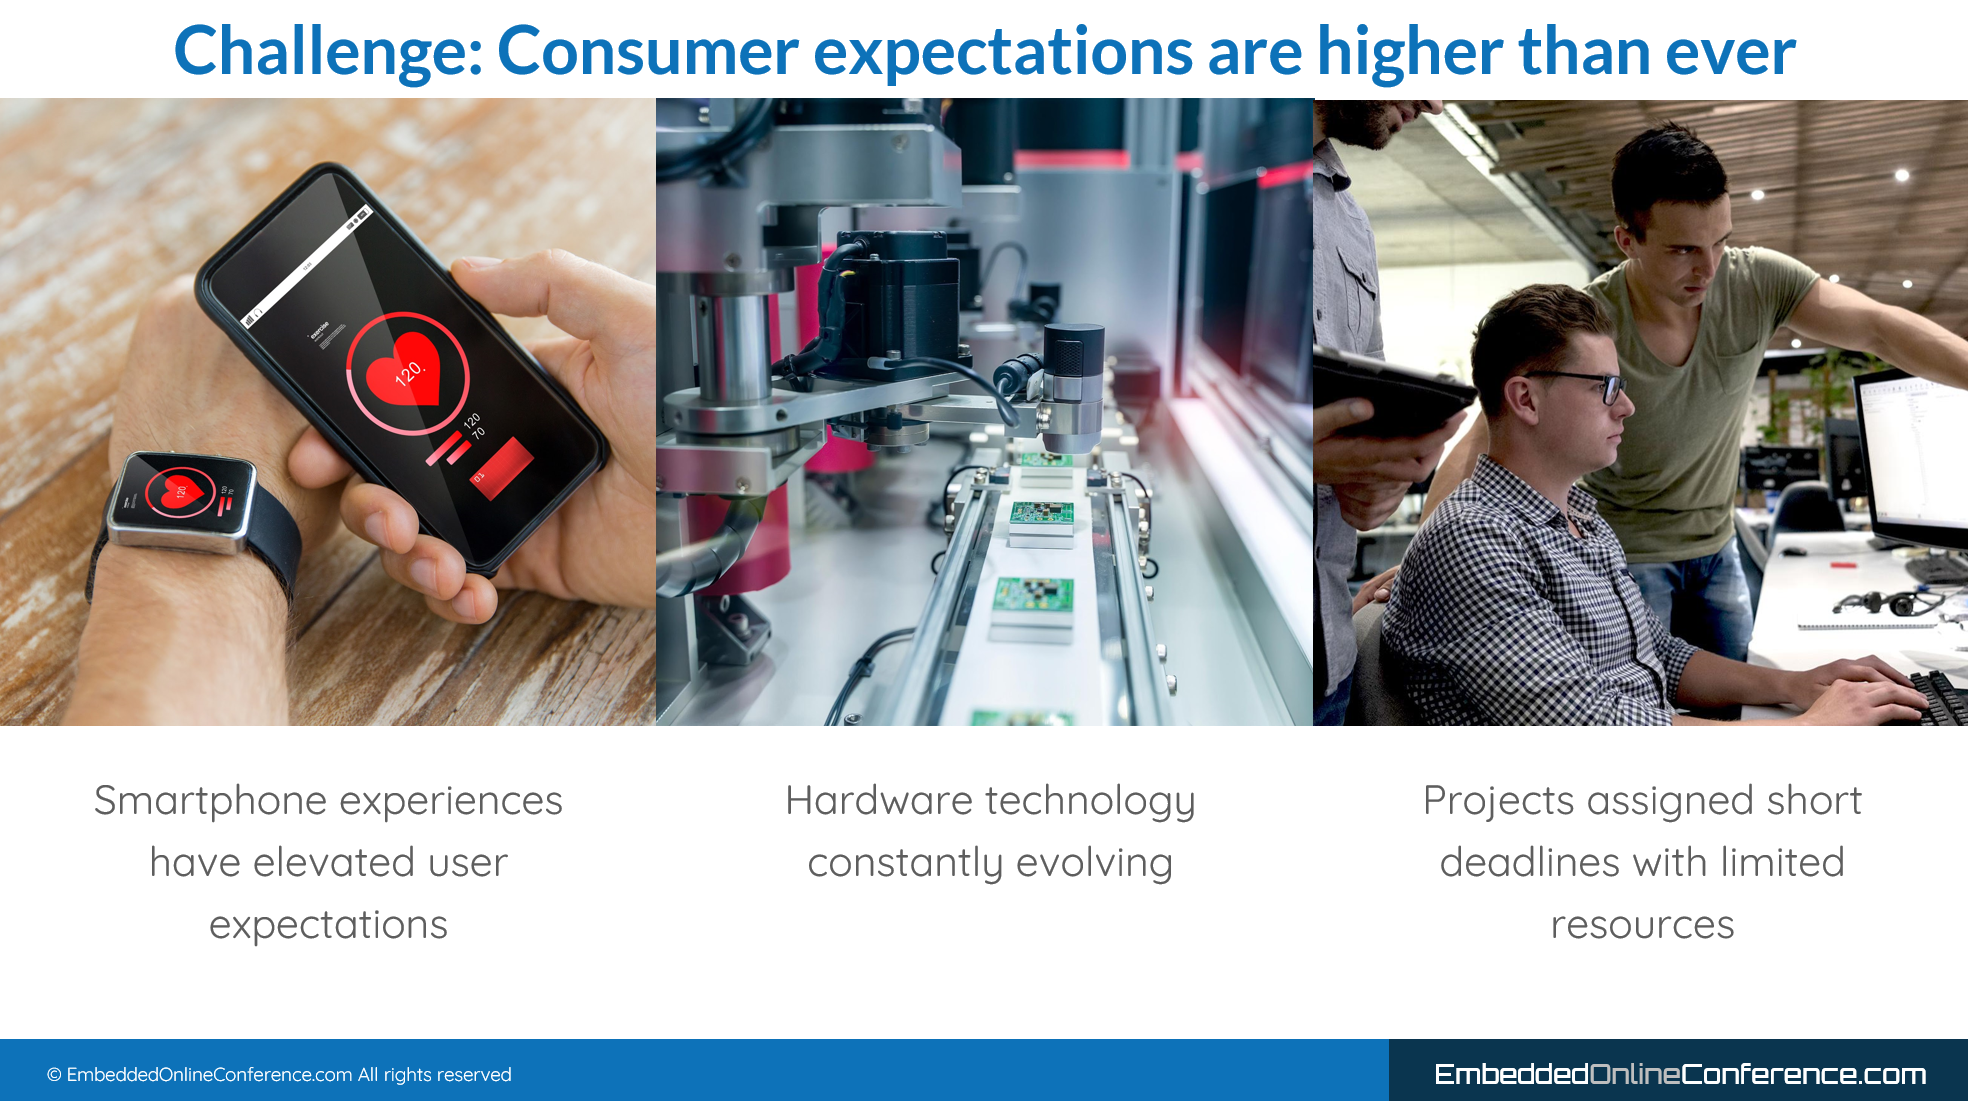 3 challenges for embedded GUI developers: Smartphone experience, chip assembly line, people working to meet deadlines